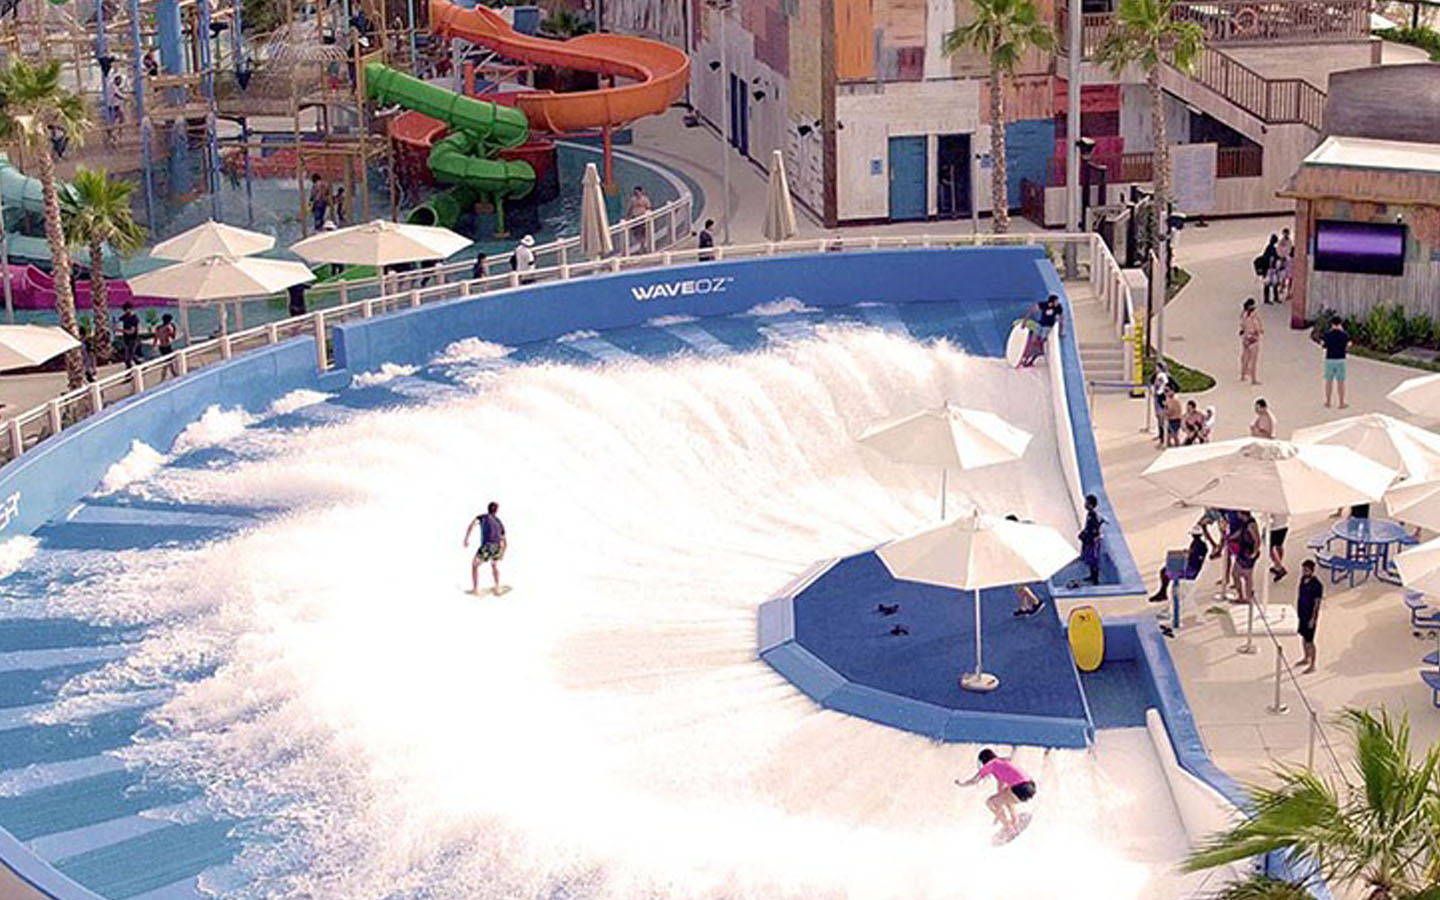 Wave Oz Flow Rider at Laguna Waterpark